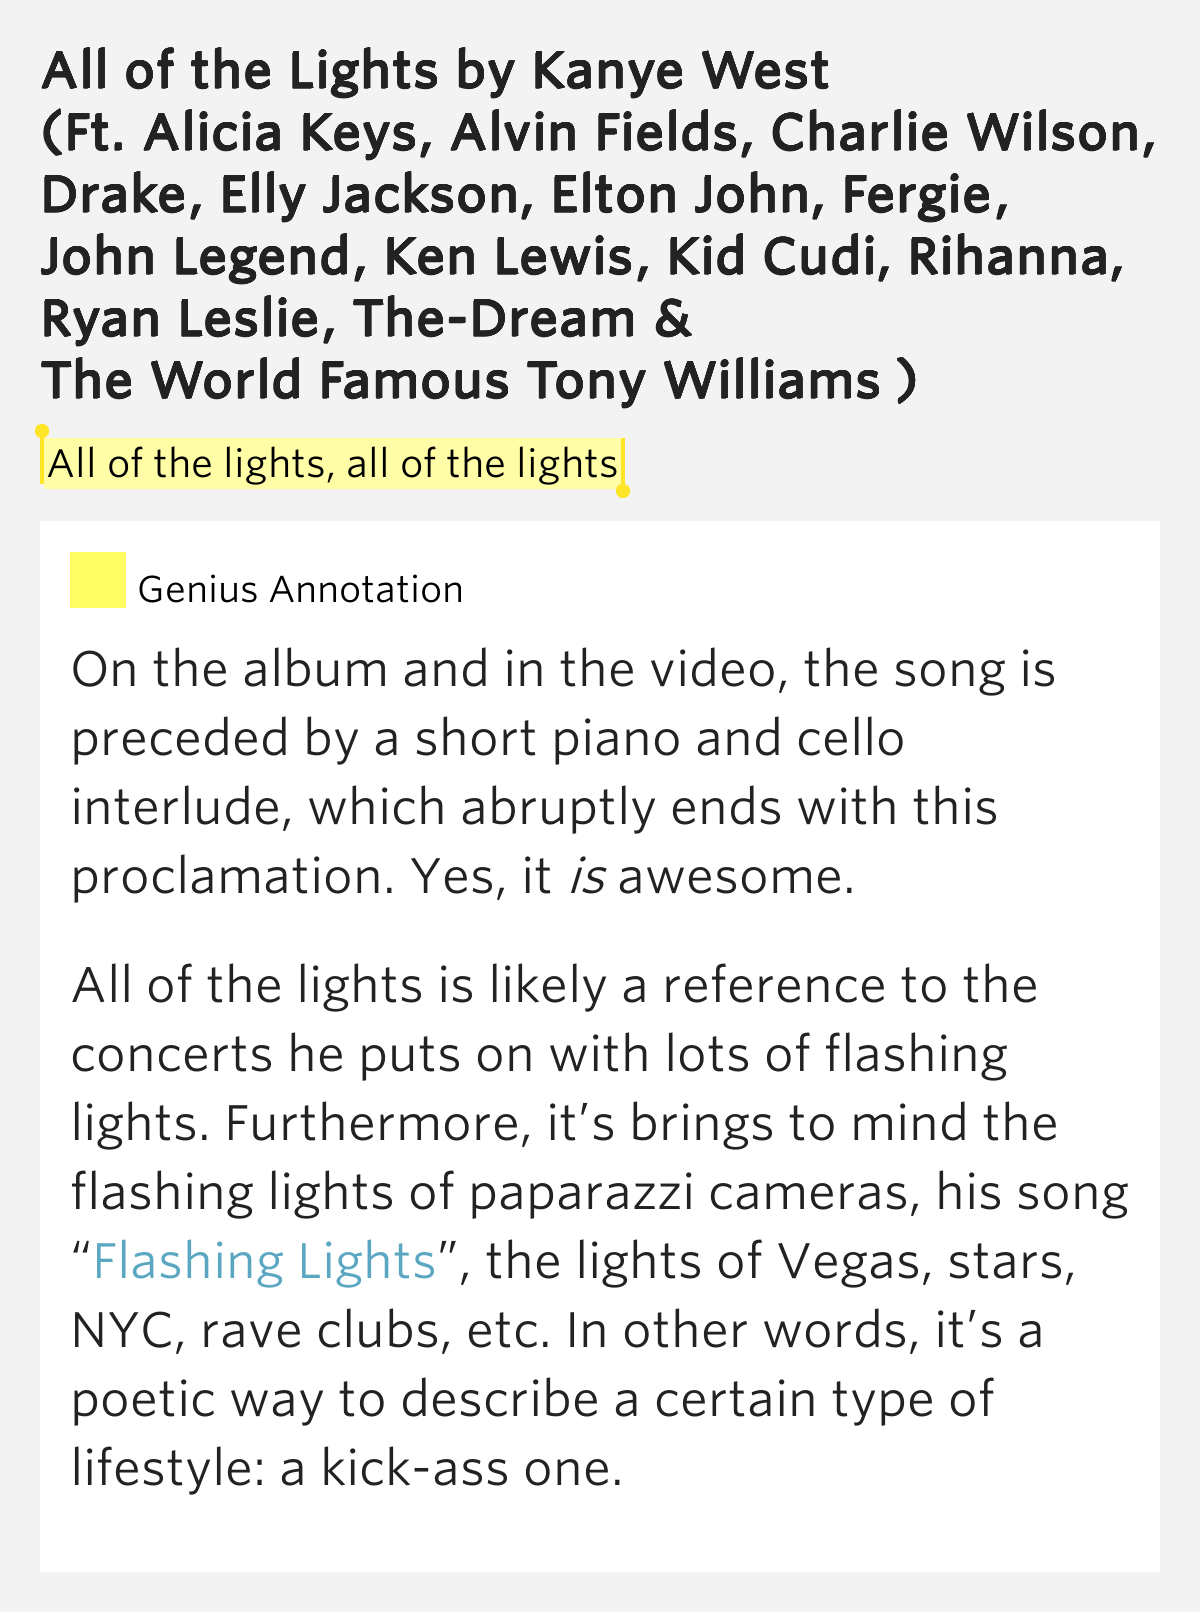 Kanye West Flashing Lights Lyrics